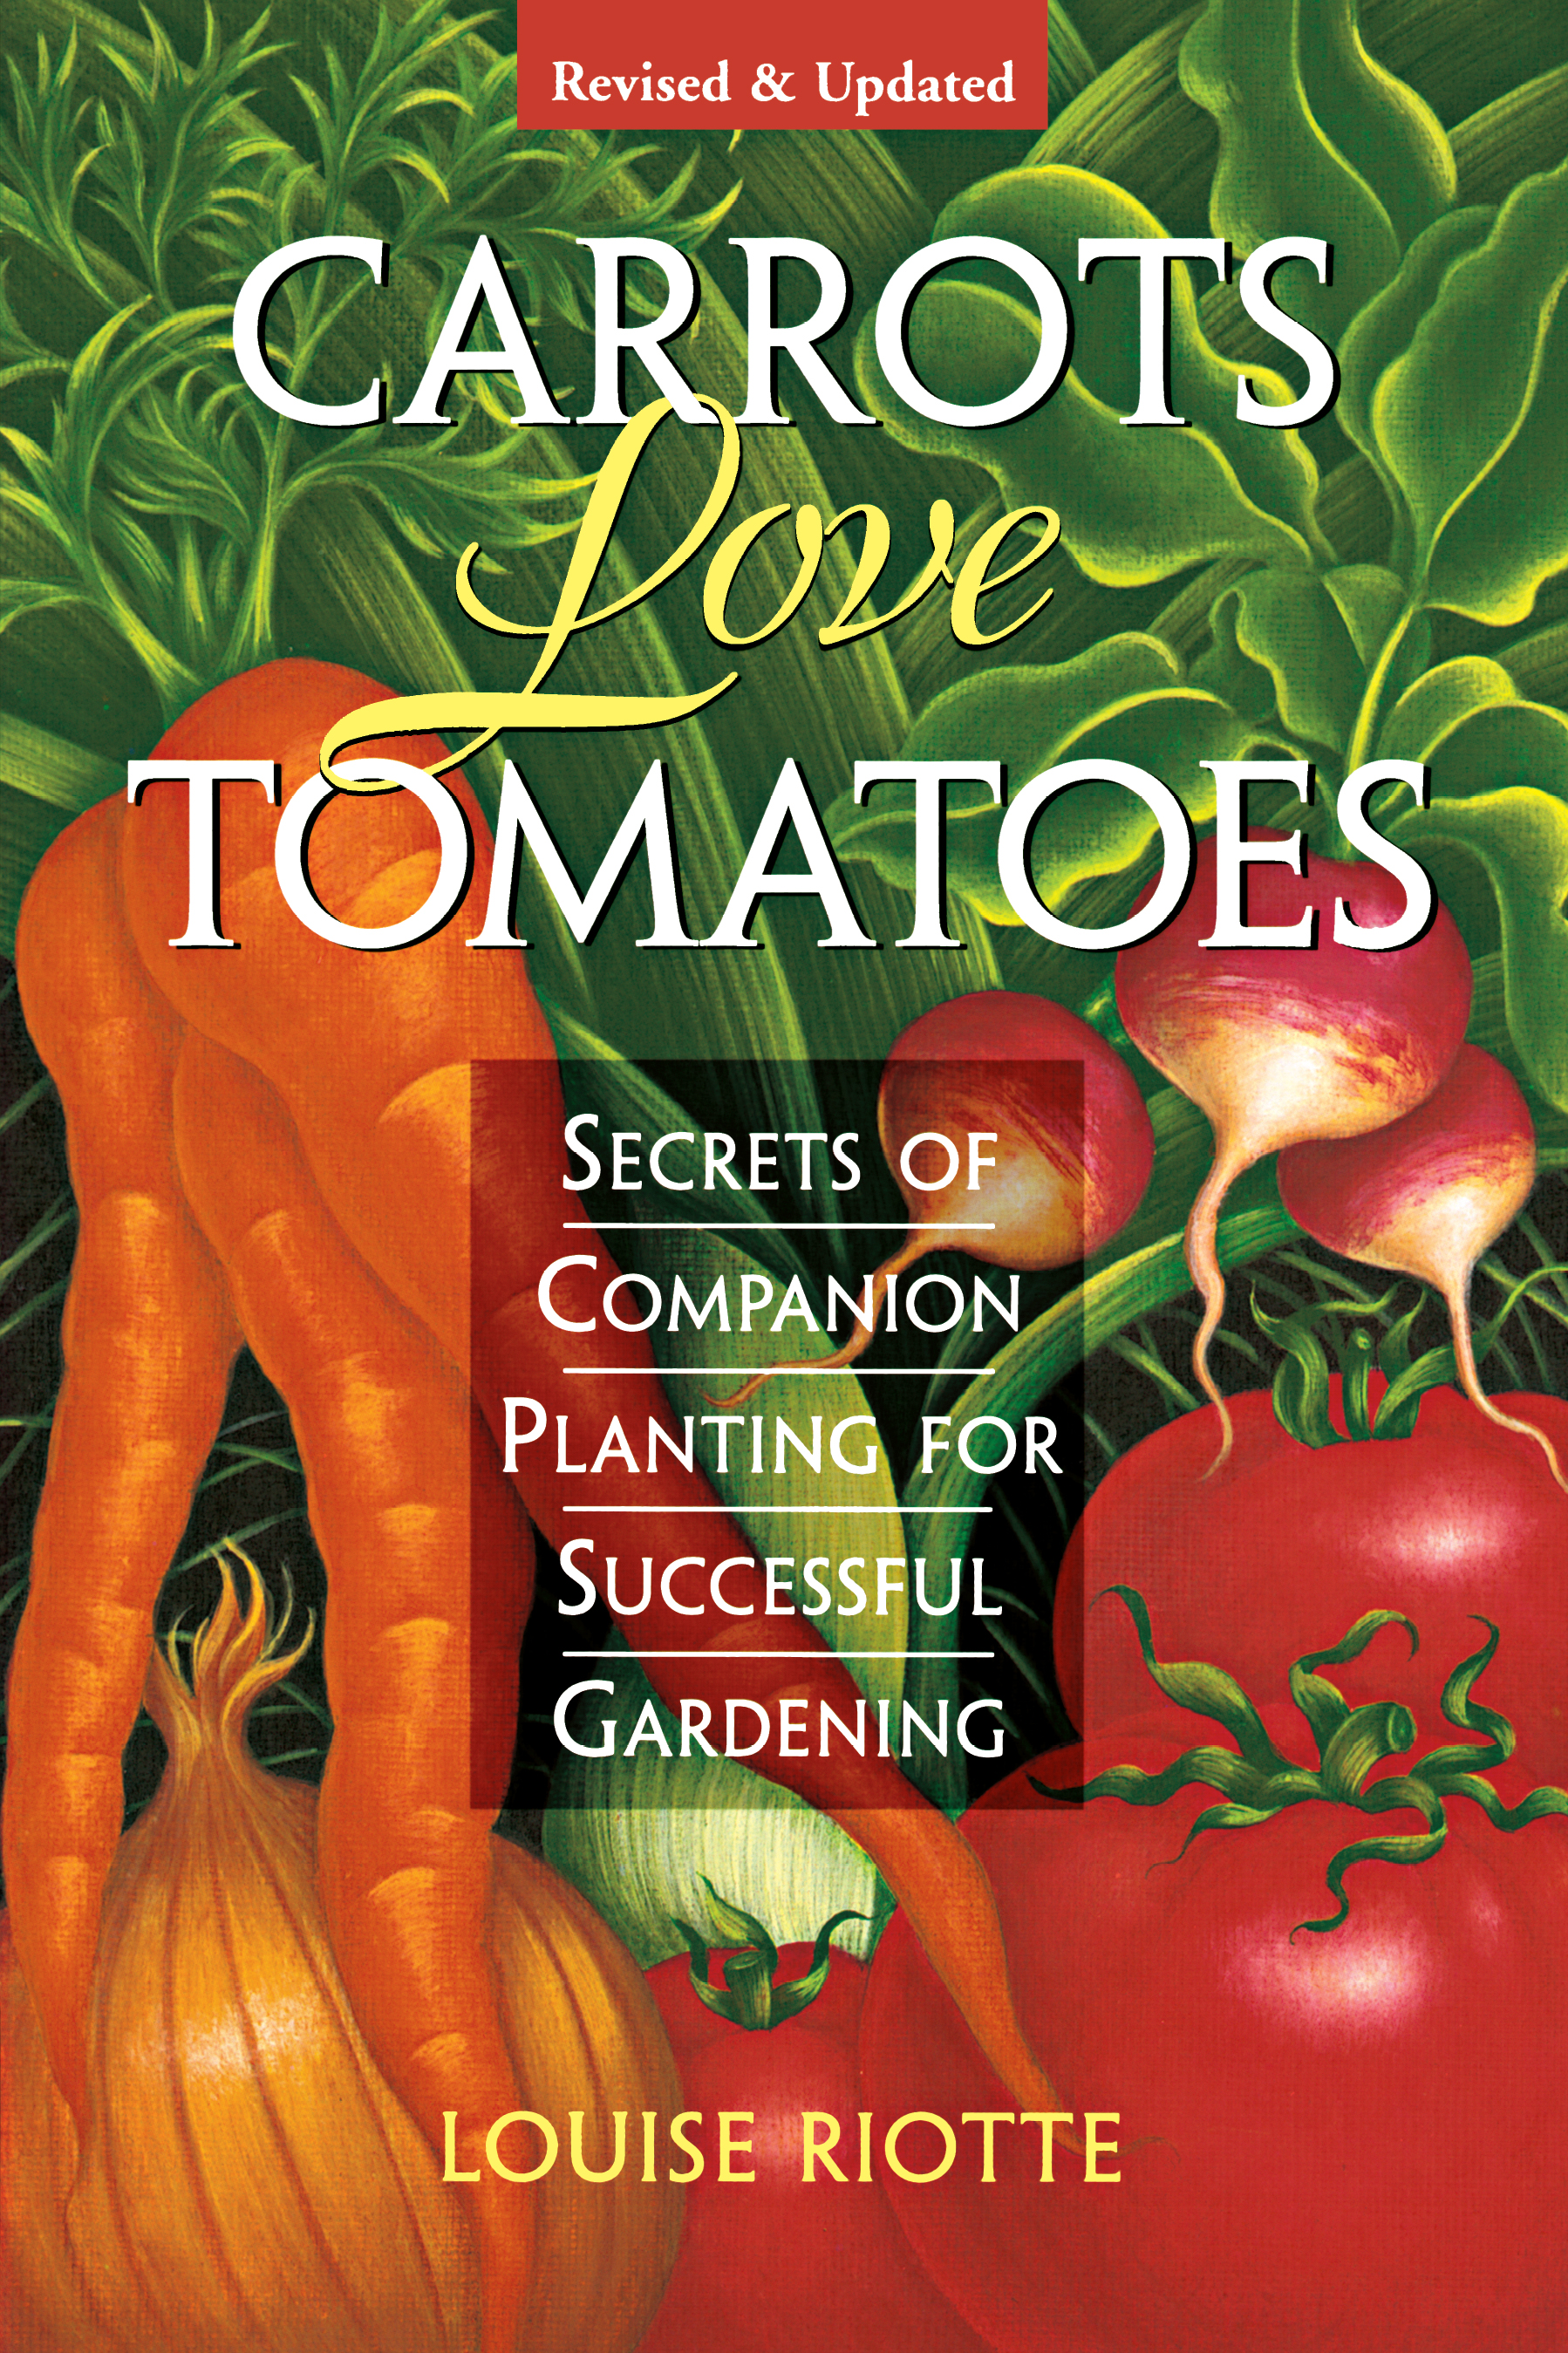 Carrots Love Tomatoes Secrets of Companion Planting for Successful Gardening - Louise Riotte